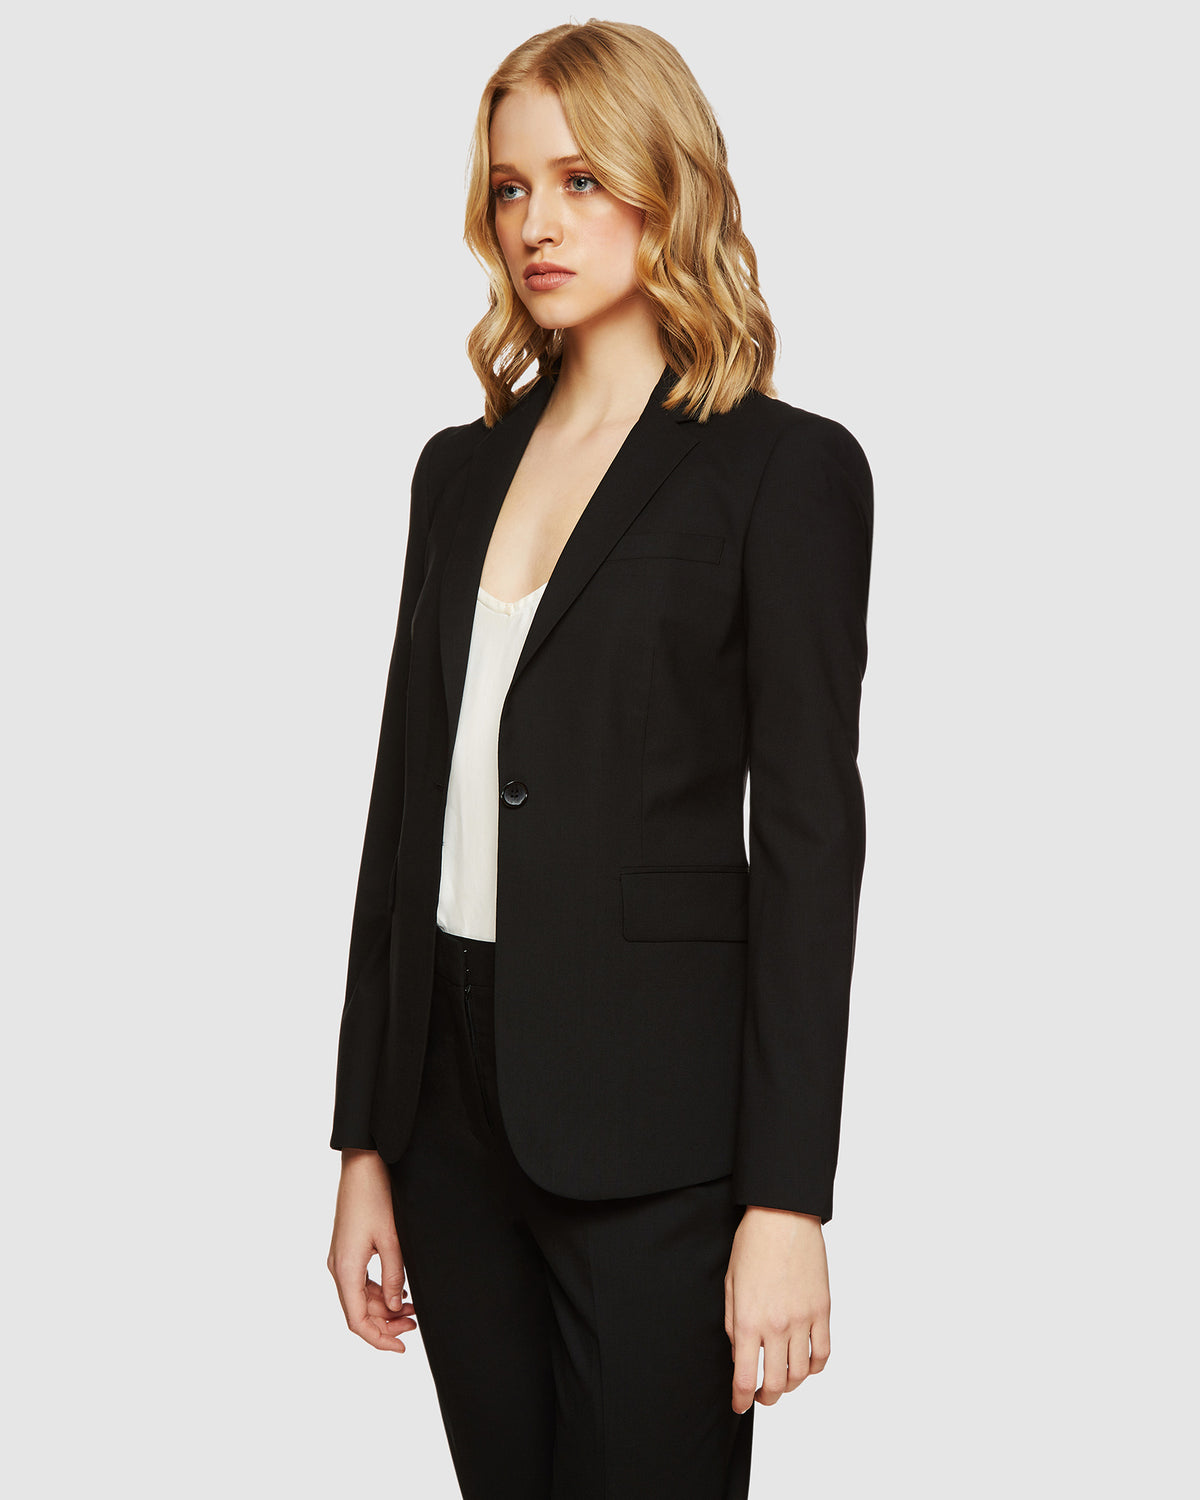 ALEXA WOOL SUIT JACKET